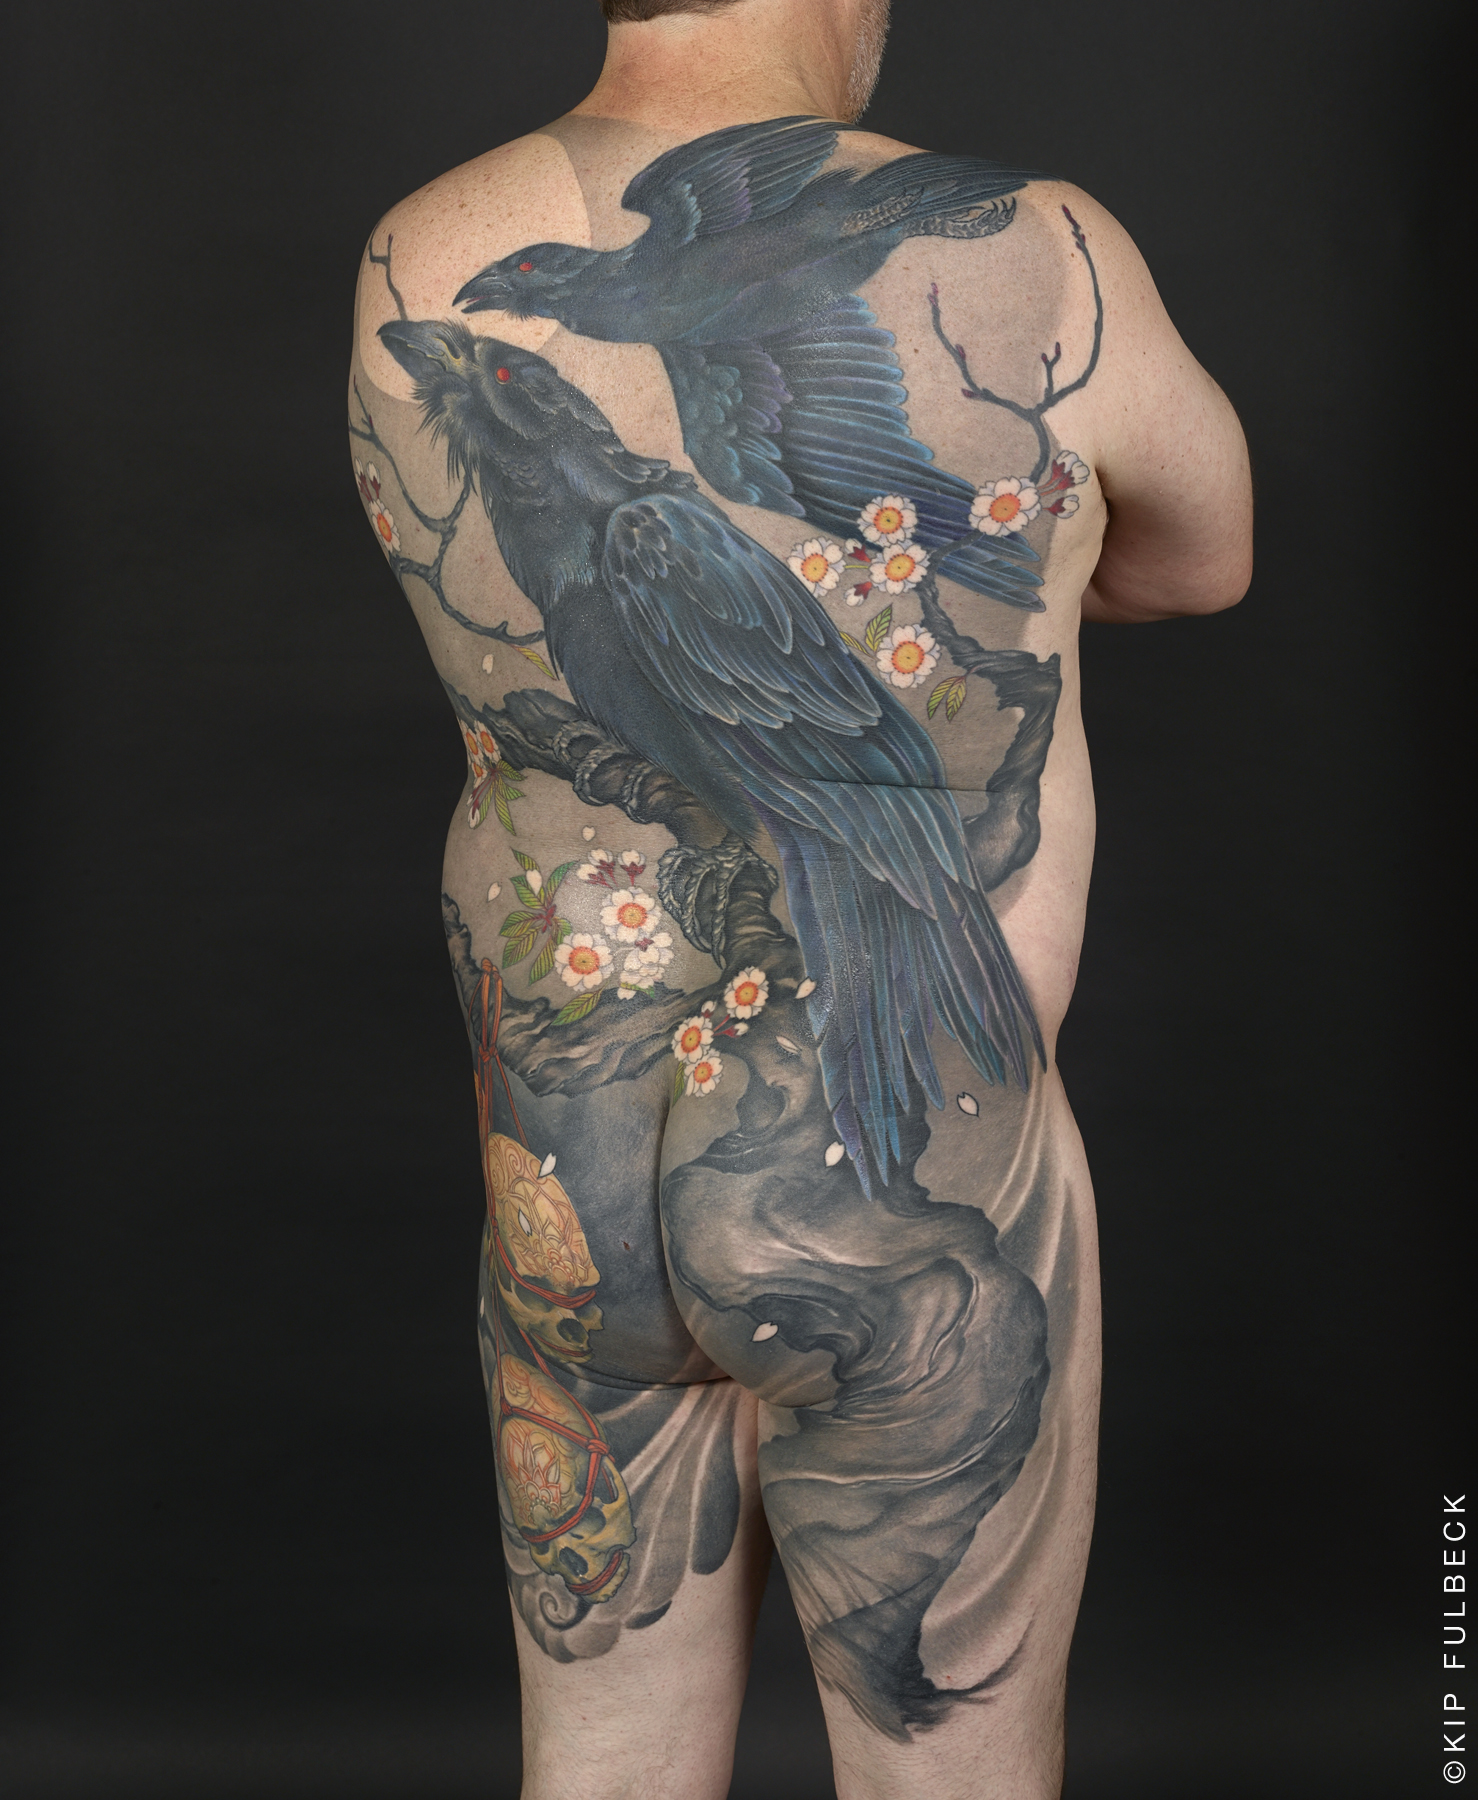 Tattoo by Jeff Gogue. Photo by Kip Fulbeck